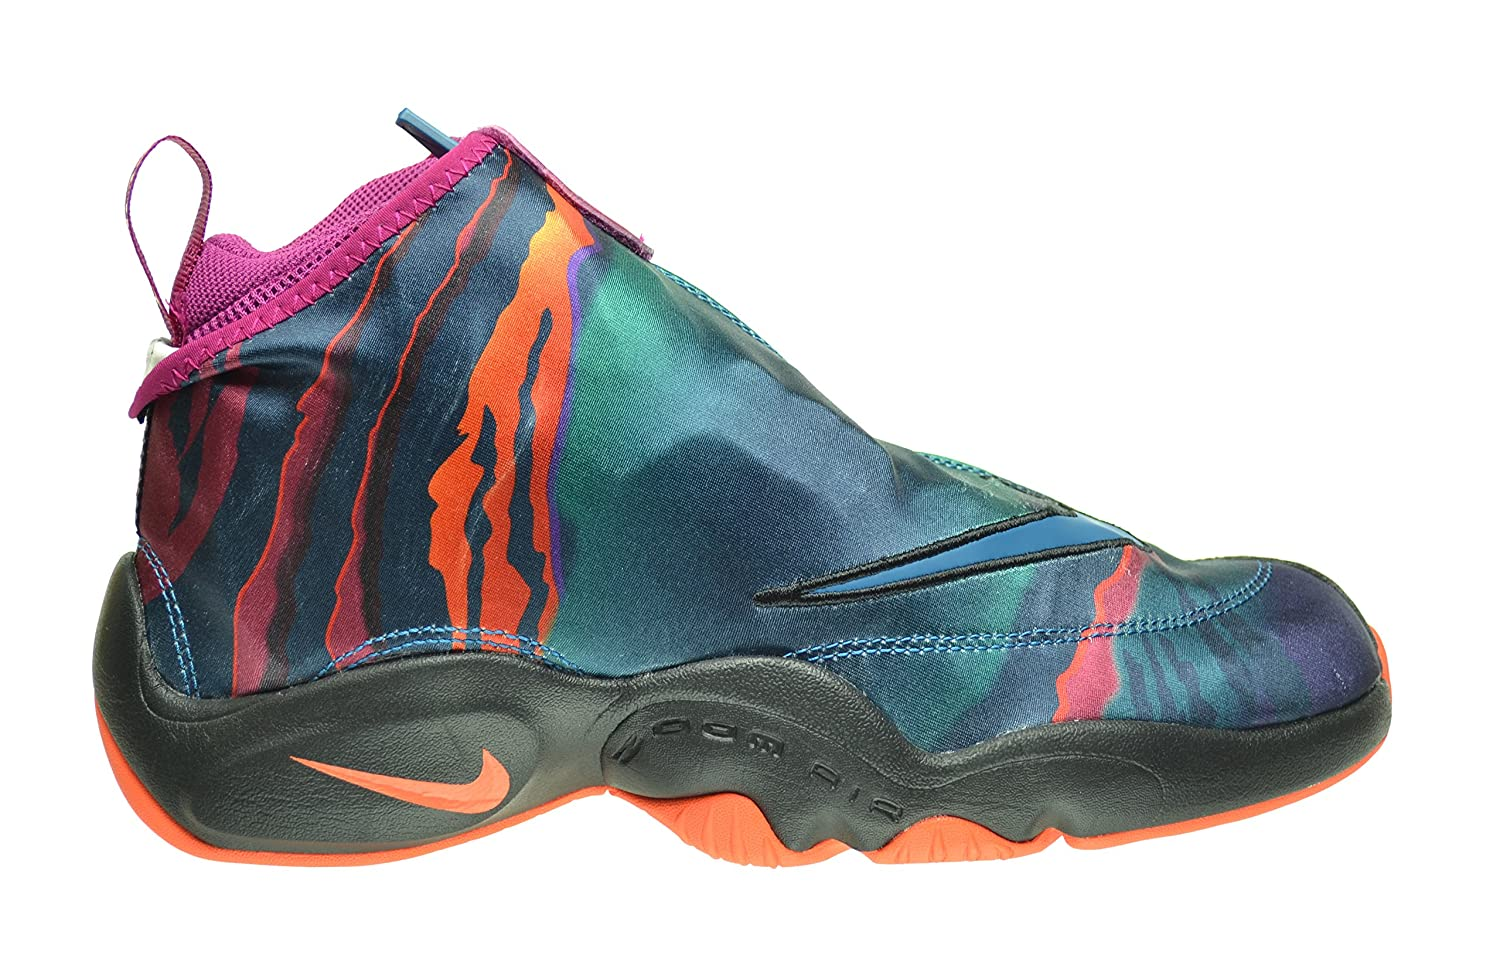 Amazon.com | Nike Air Zoom Flight The Glove Premium Men's Shoes Green Abyss/ Black-Bright Magnet-Turf Orange 631406-300 (9 D(M) US) | Basketball